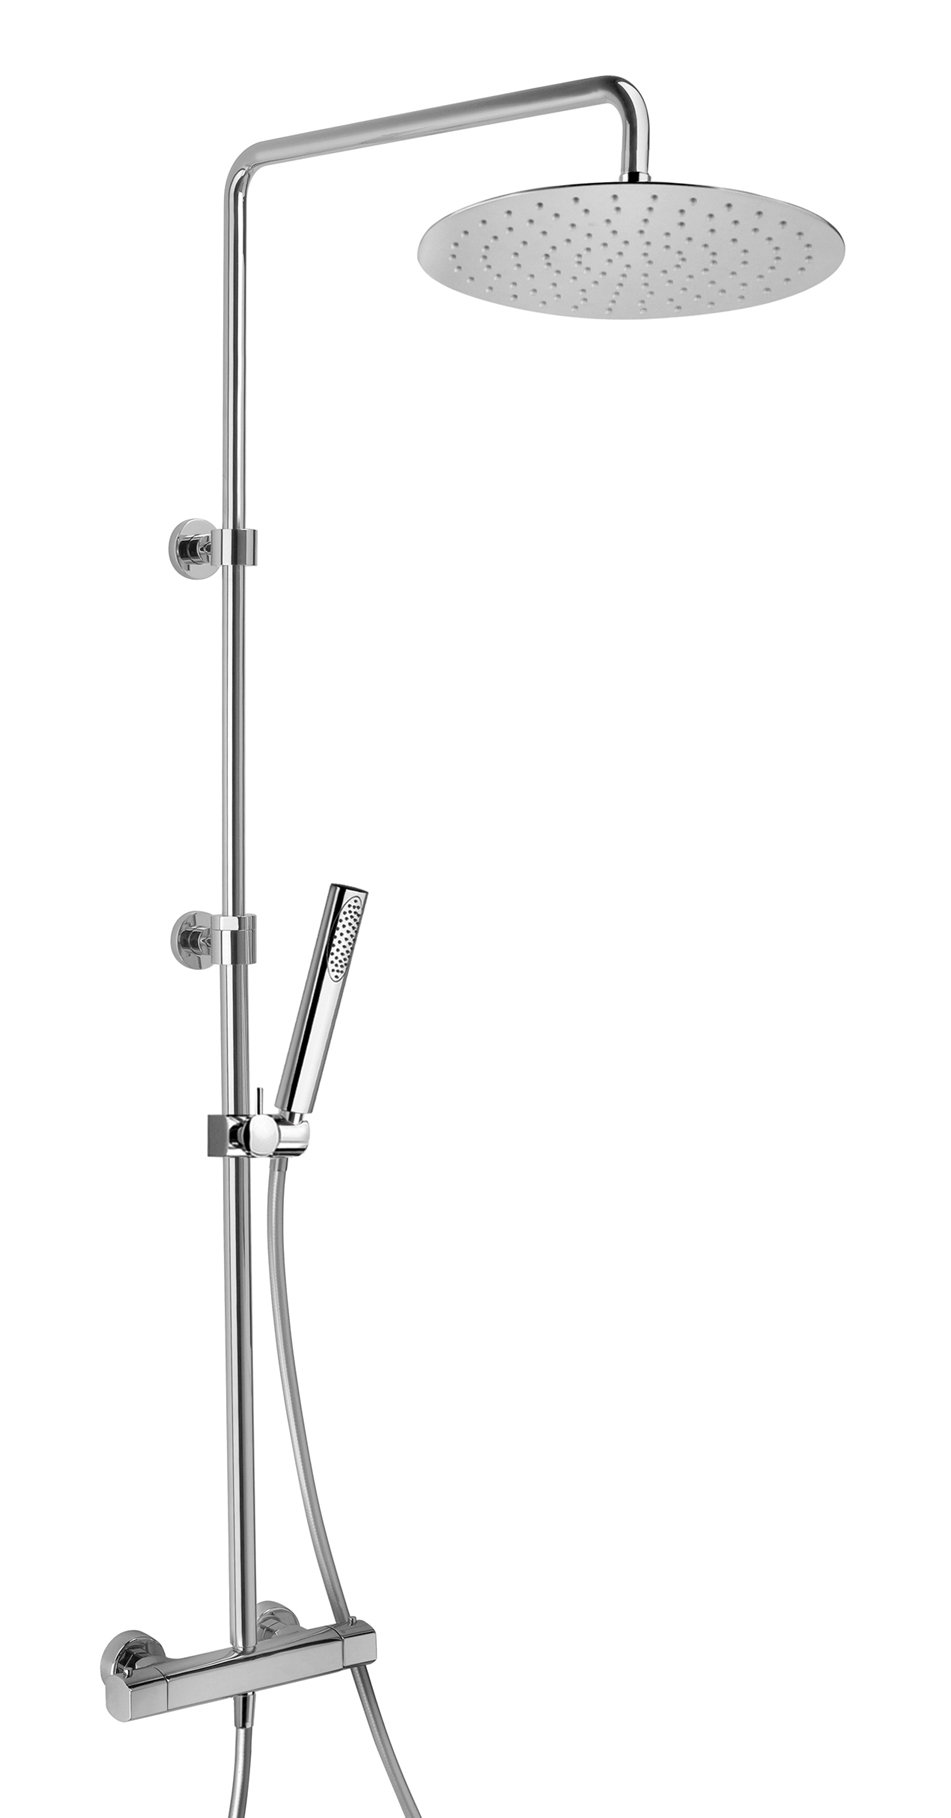 Adjustable Thermostatic Valve Shower Column With Hand Shower in Chrome